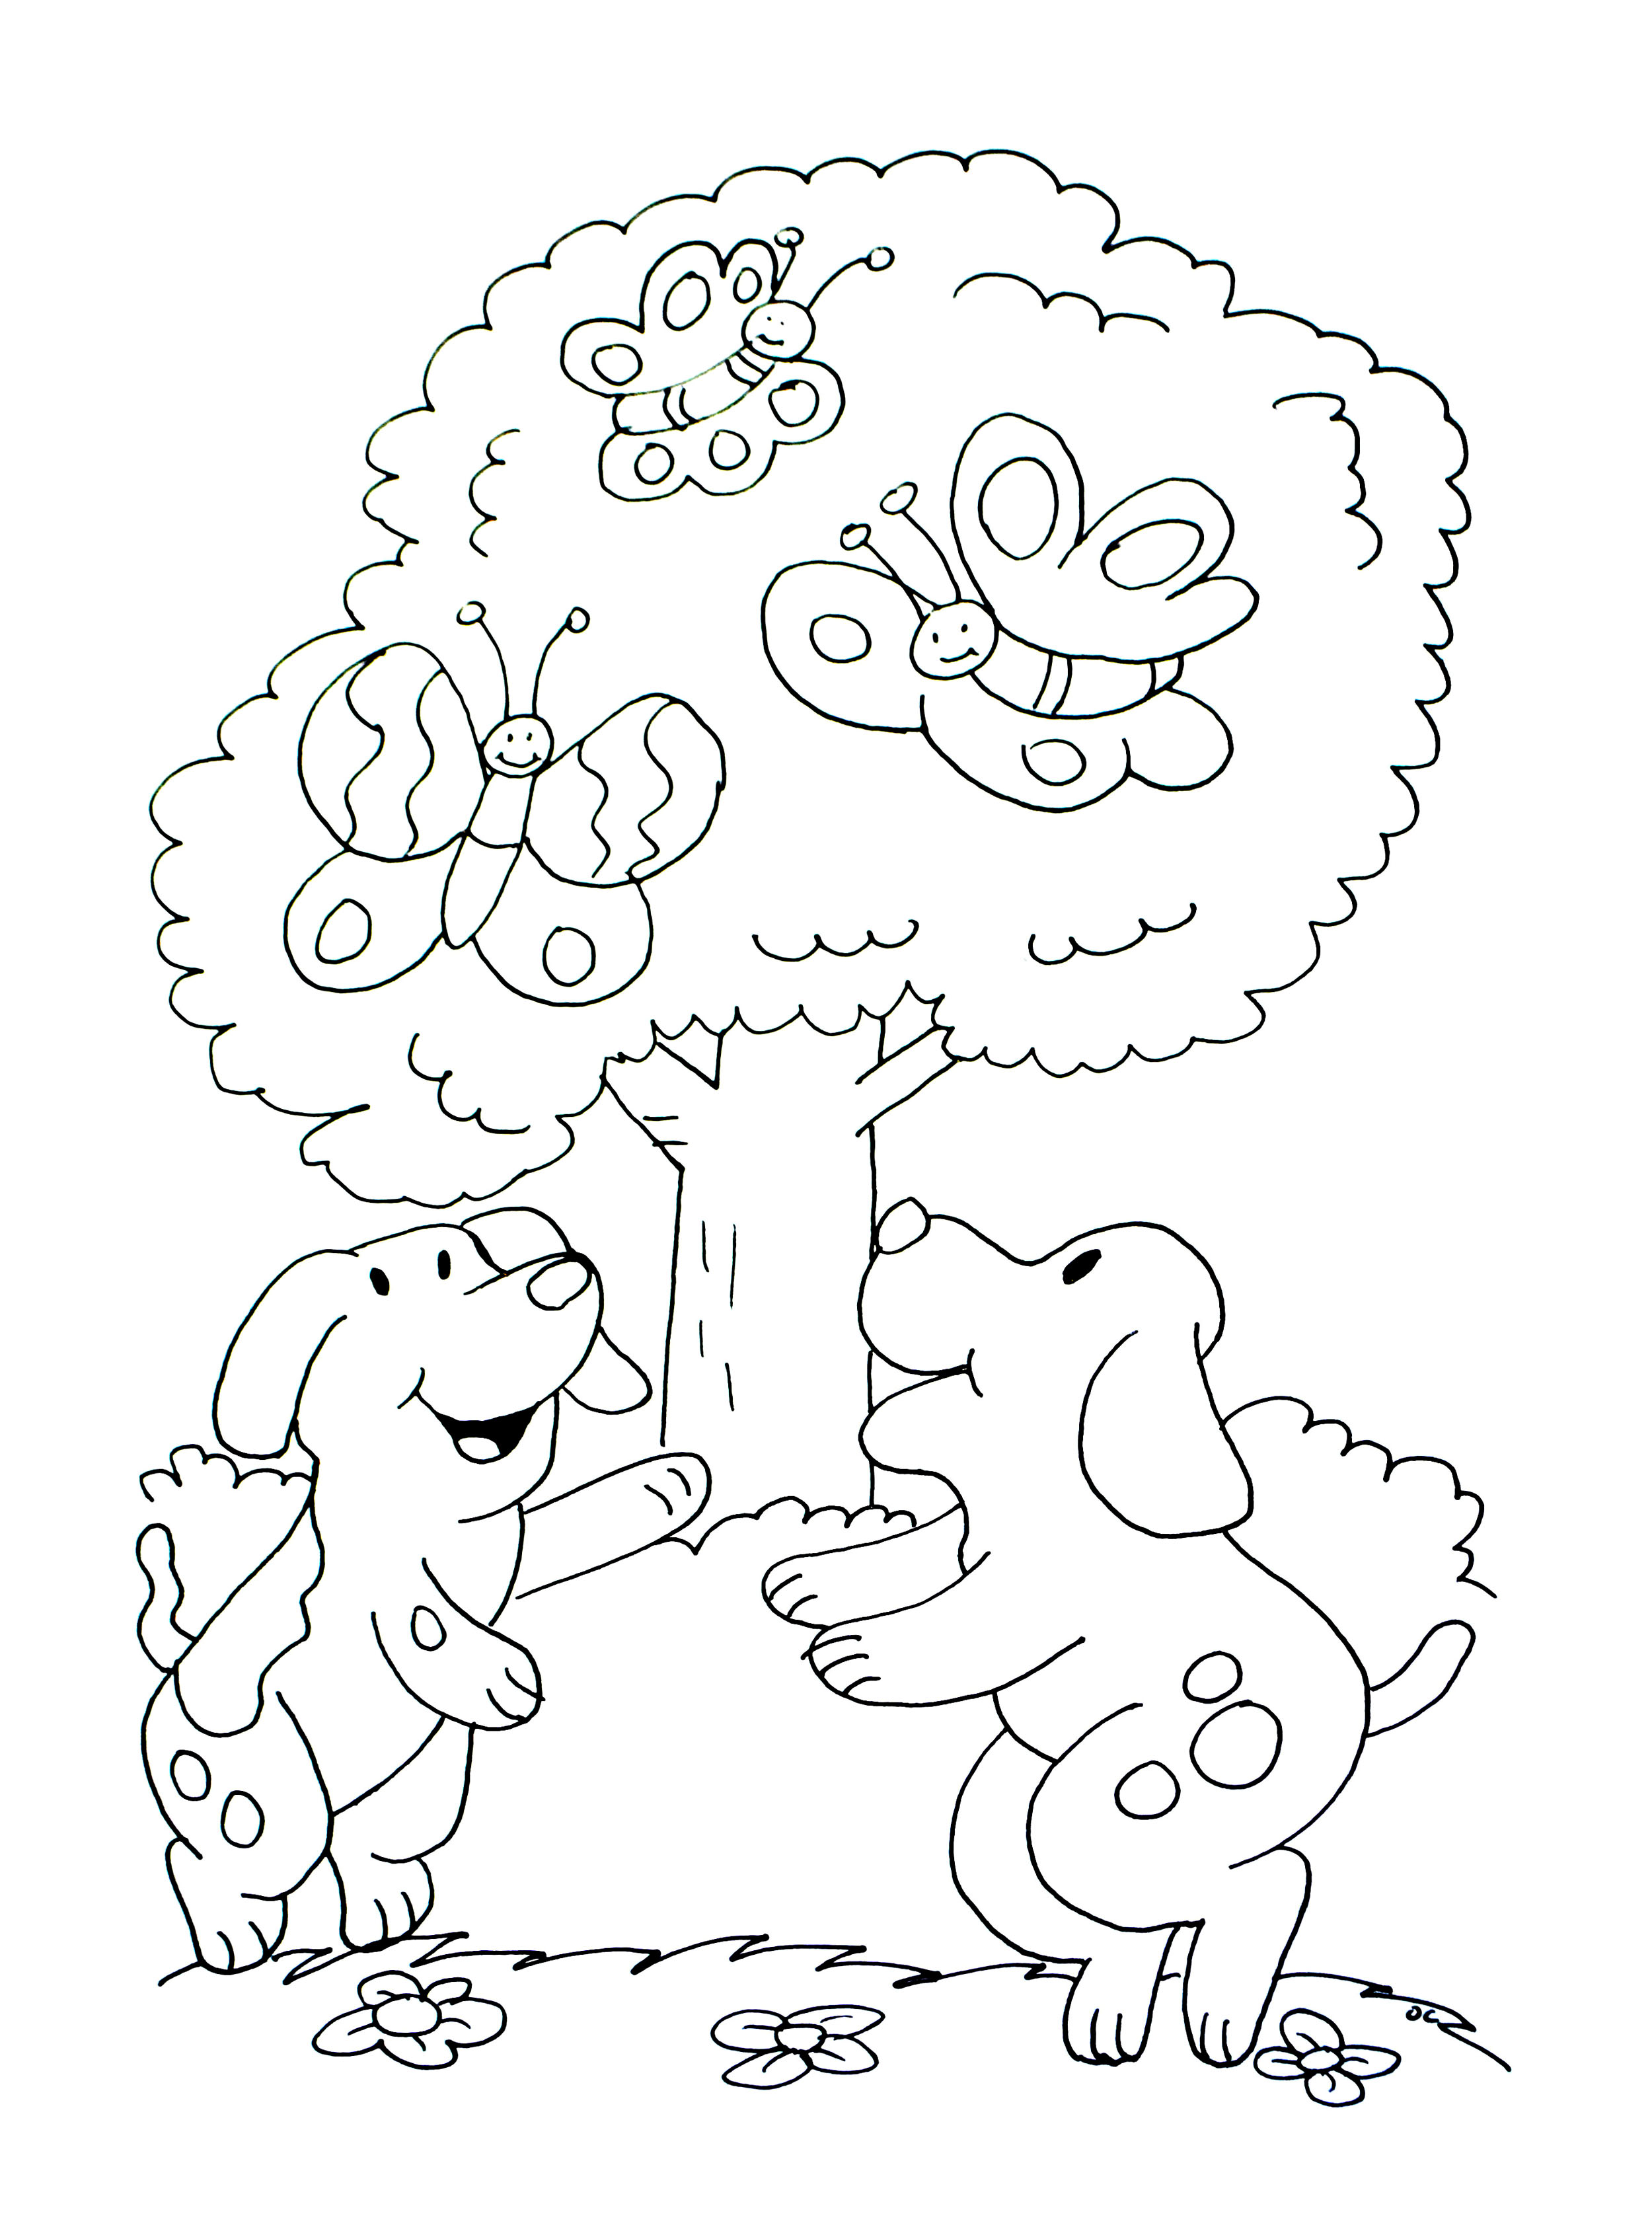 Free Dog coloring page to print and color : Two dogs playing in front of a tree, with three butterflies